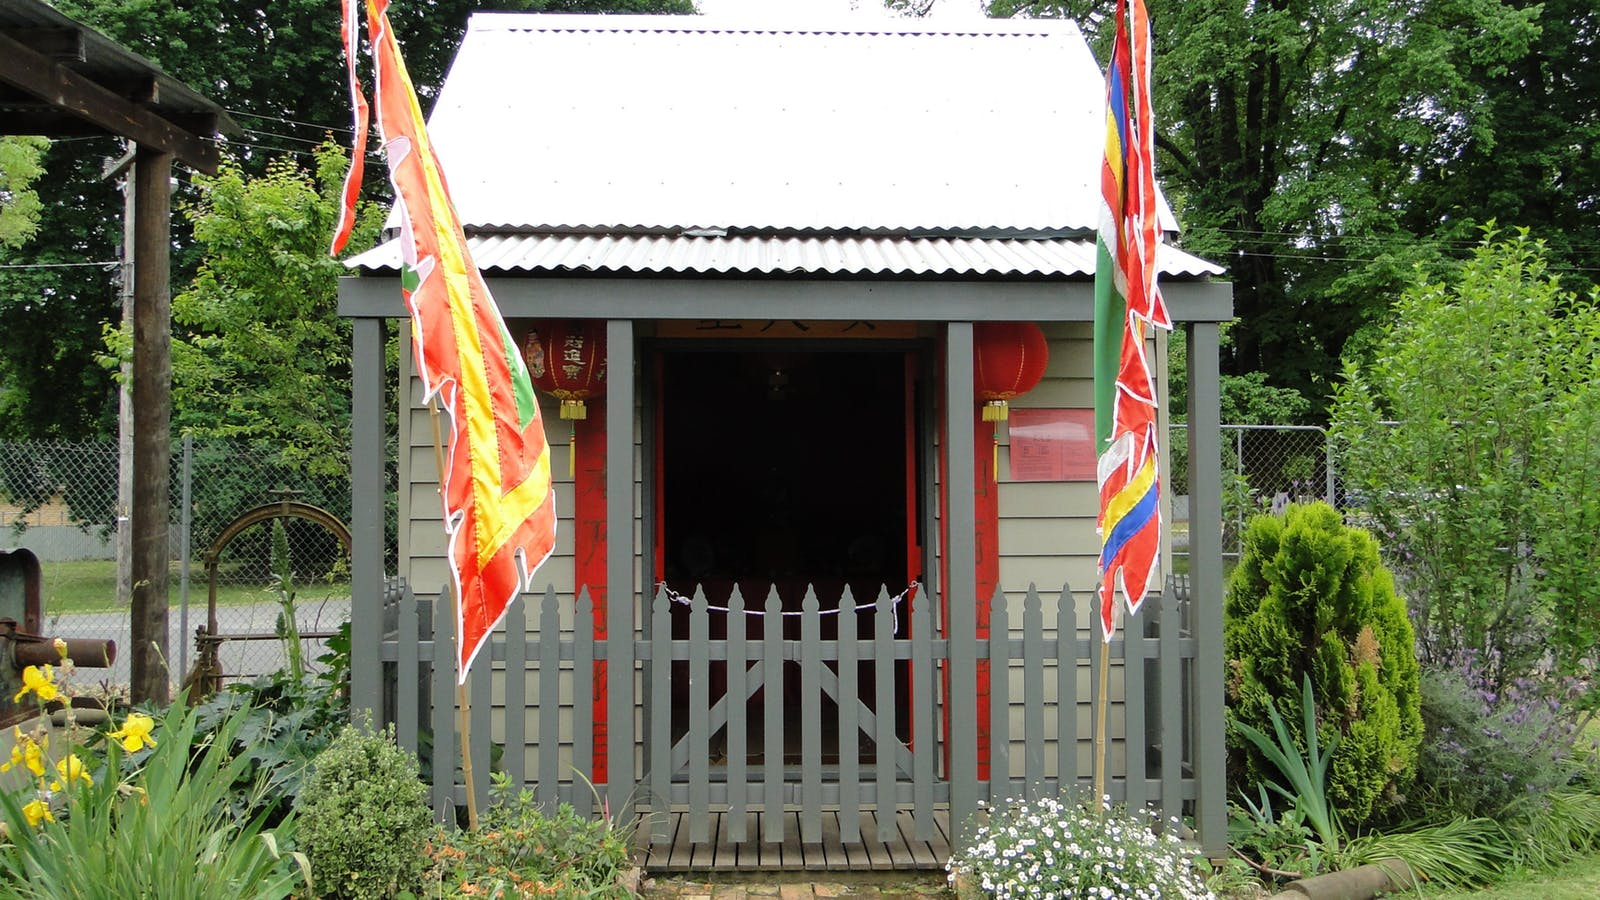 Copy of Chinese Joss House typical of the style used in this area